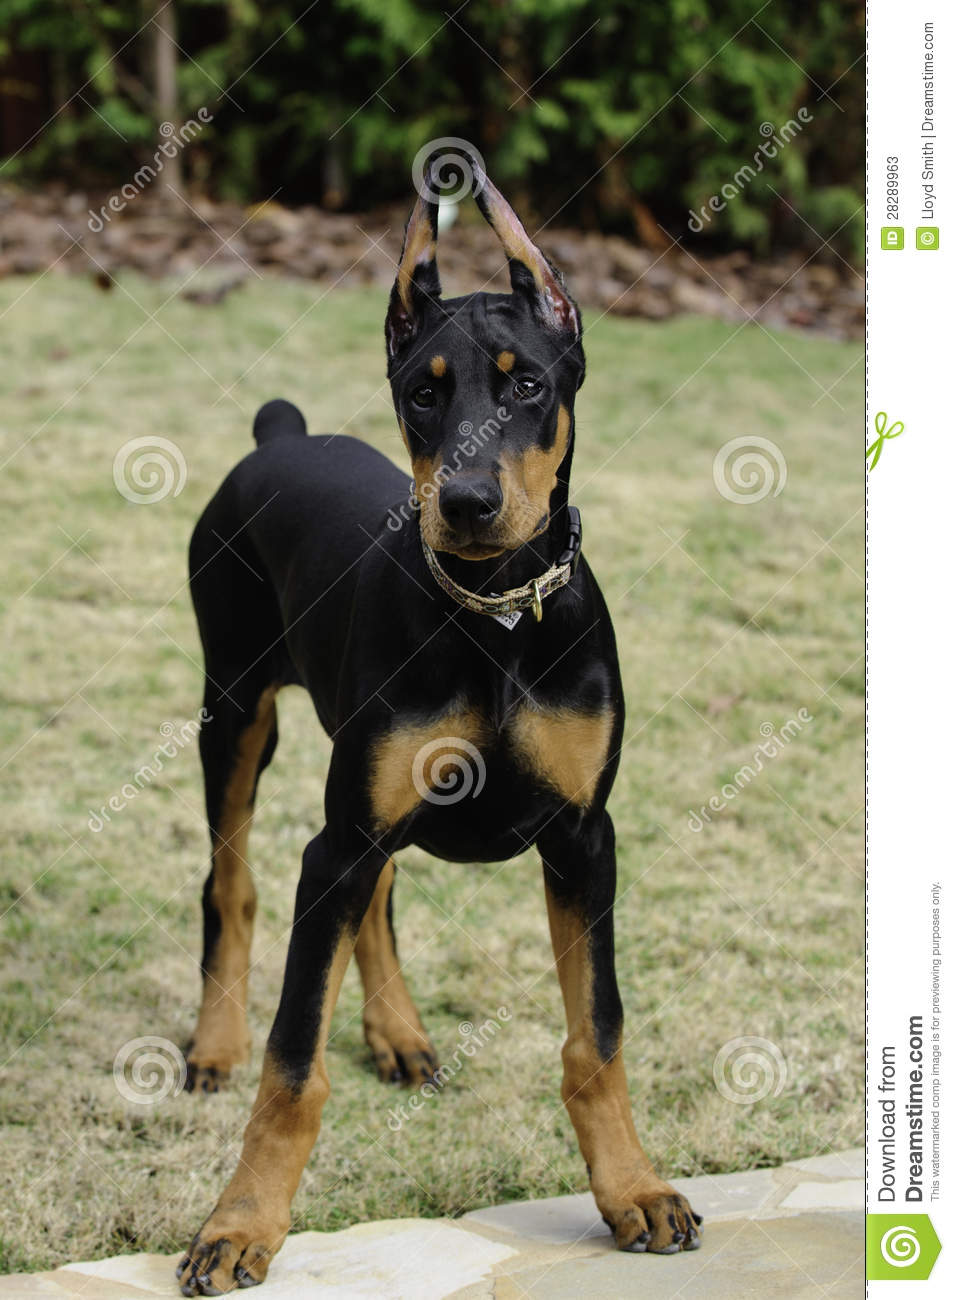 Doberman Pinscher Puppy Stock Image Image Of Louis Muscular 28289963